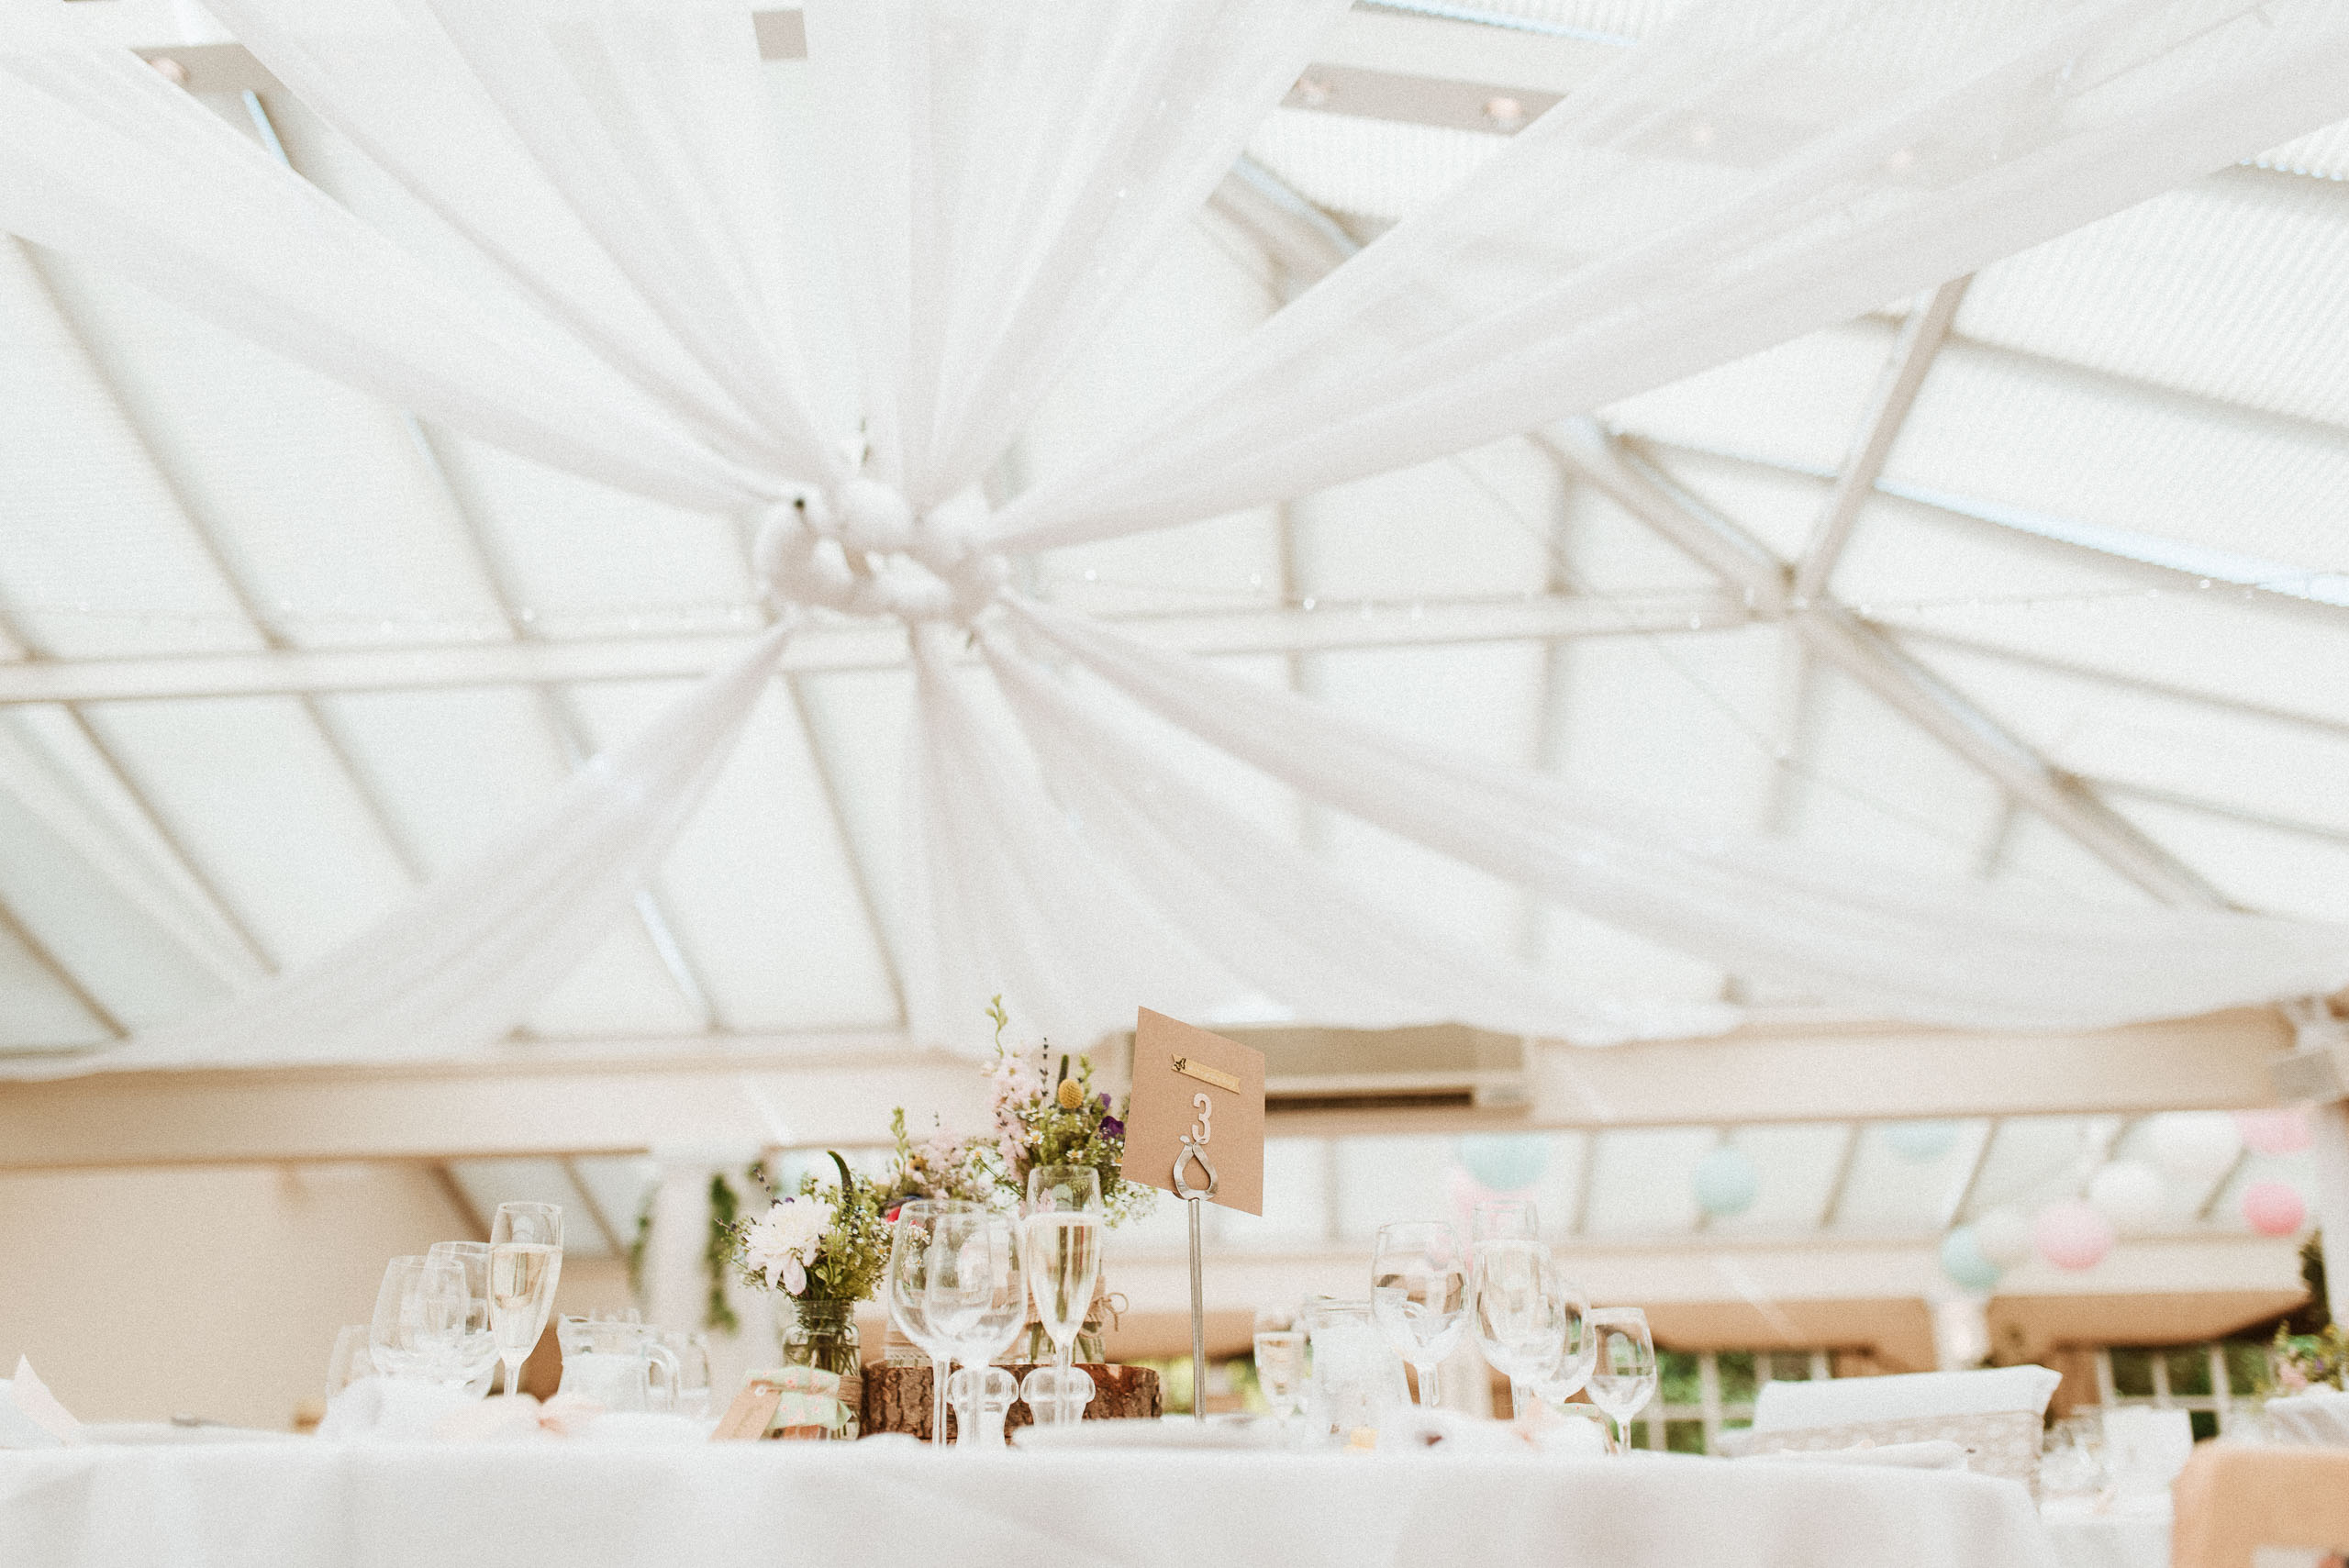 table decorations under white ceiling drapes